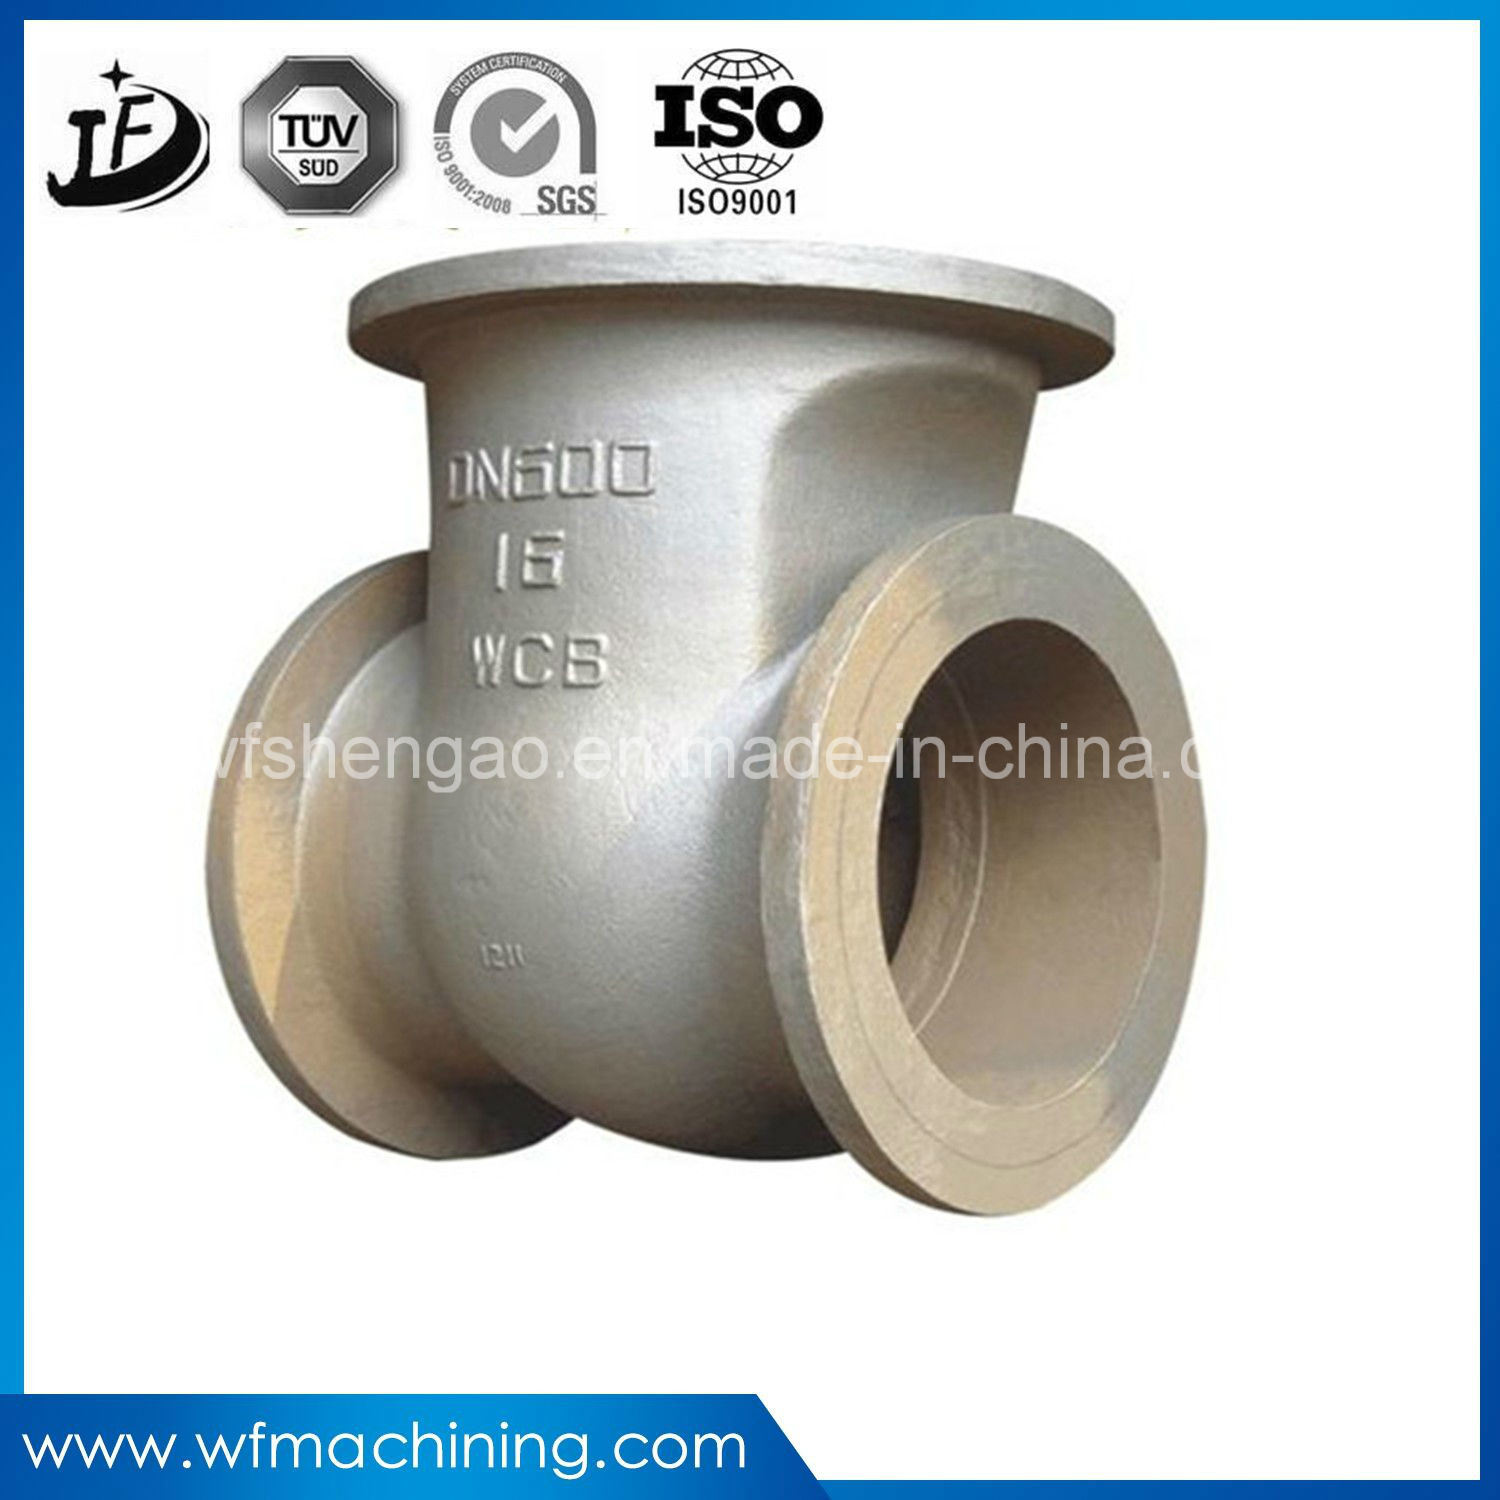 OEM Precision Casting Foundry Iron/Steel Valve Part for Agricultural Machinery